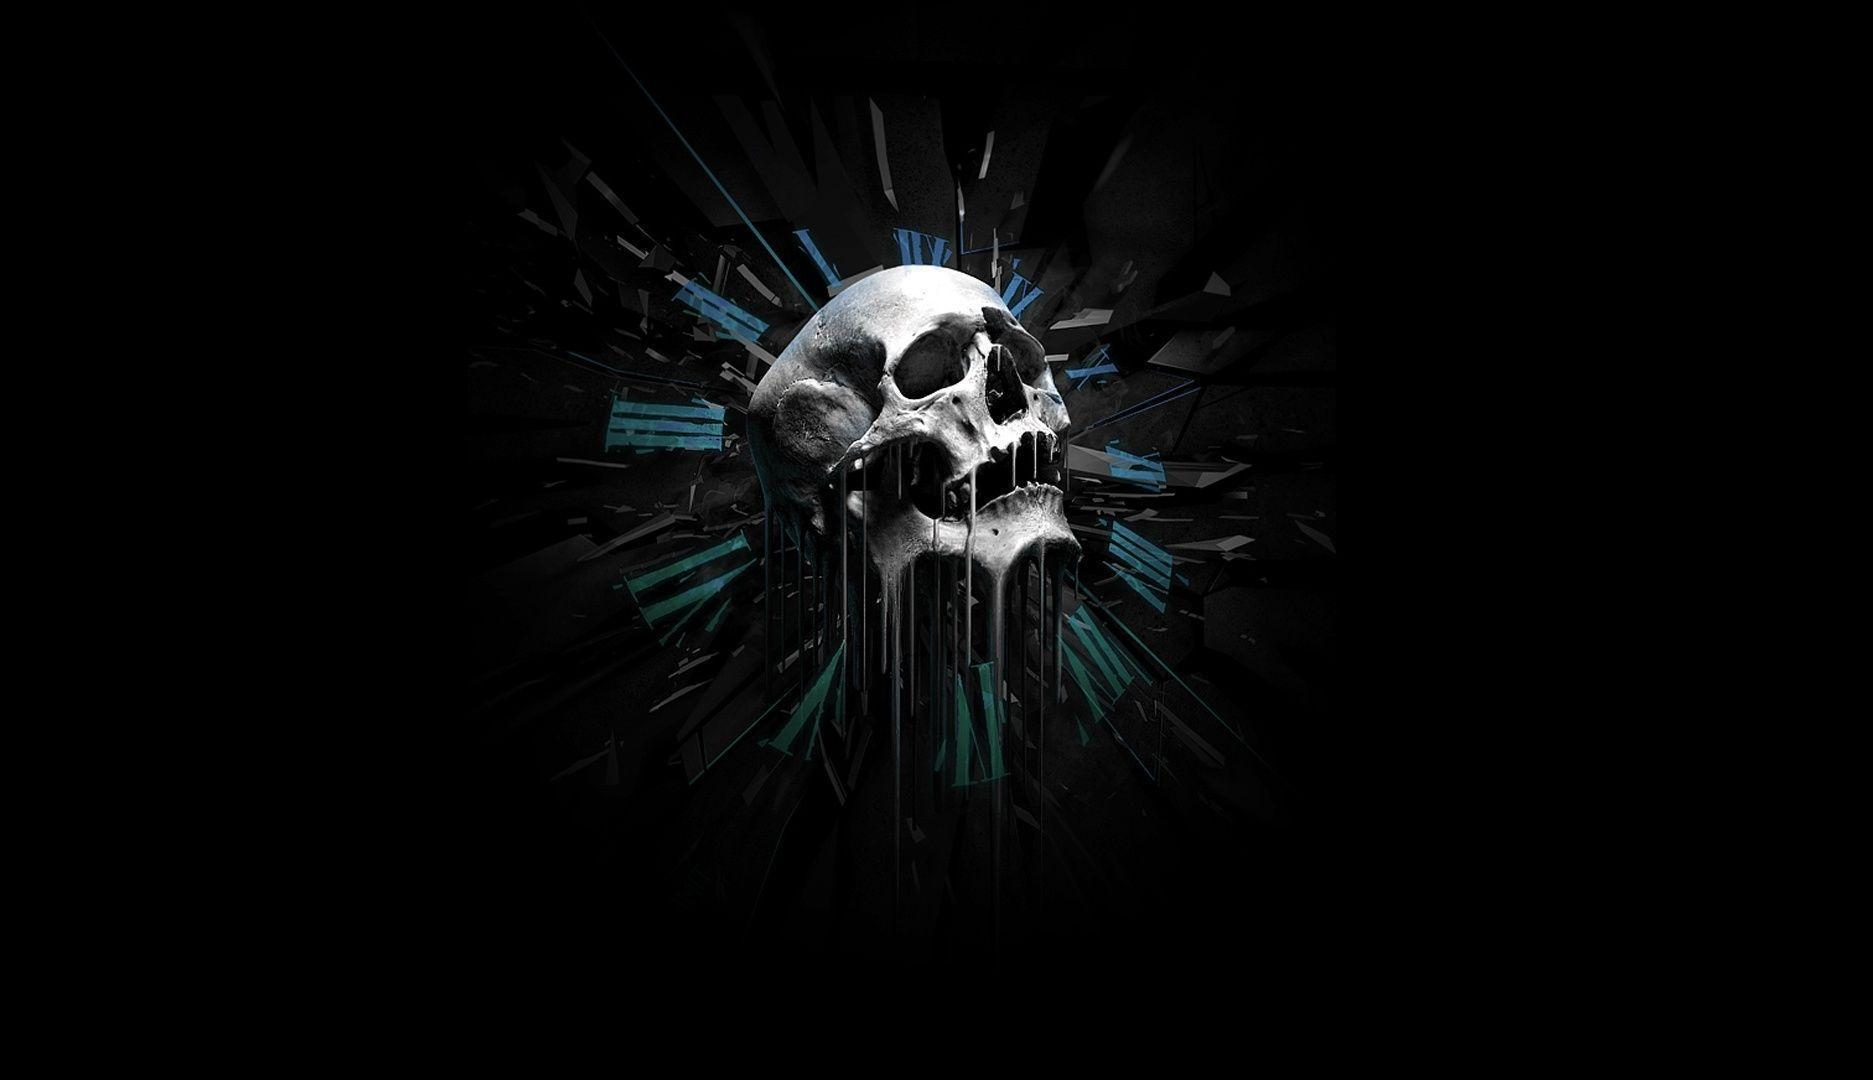 3D Skull Against Black BaAckground Free Stock Photo and Wallpaper